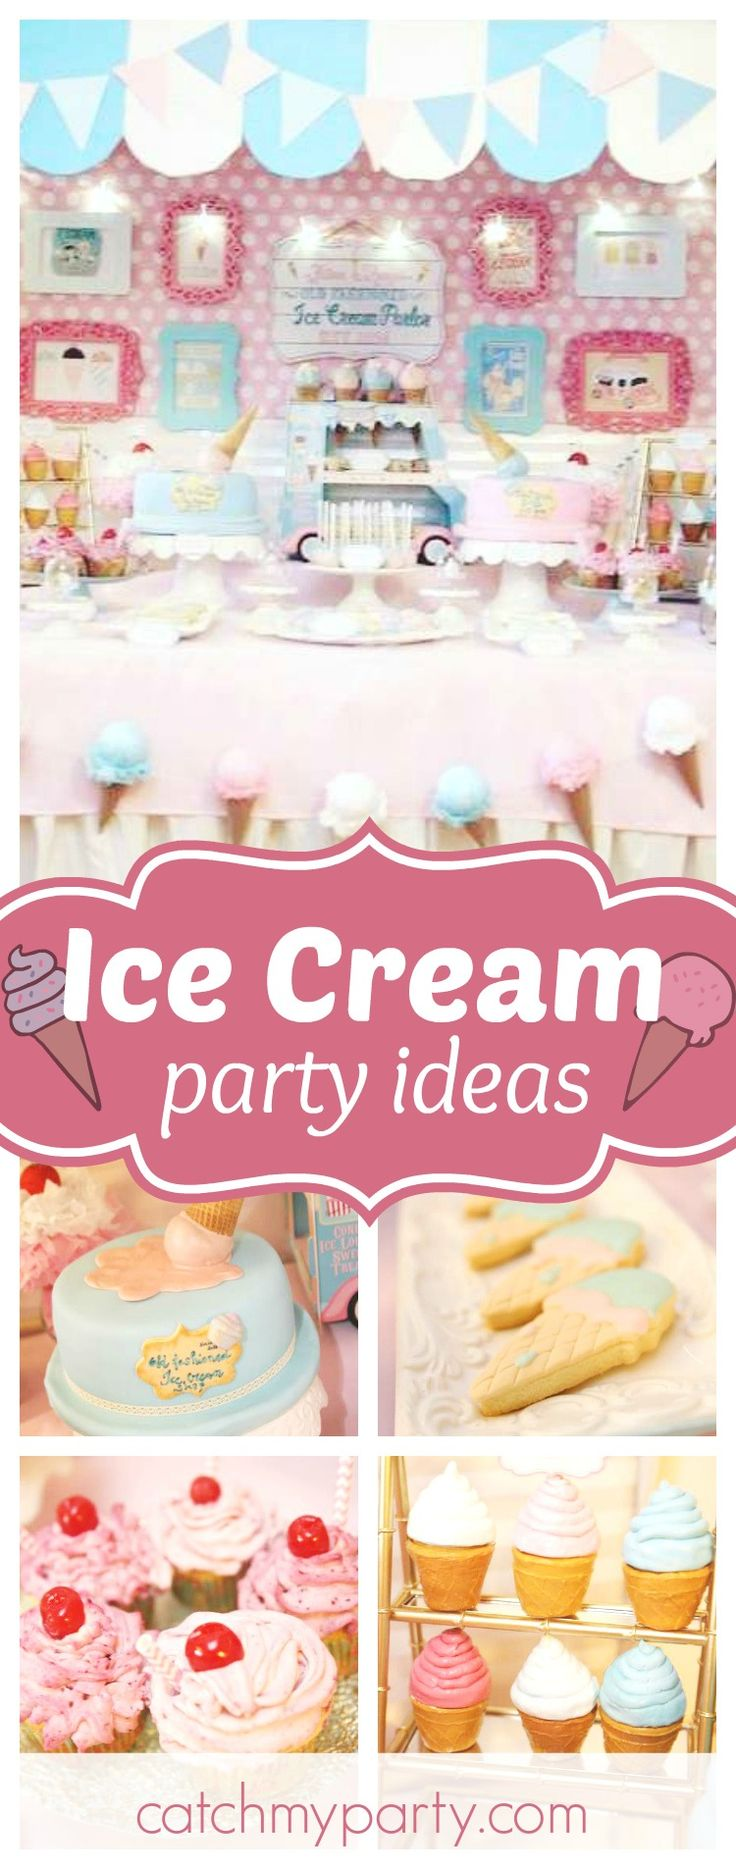 Don't miss this pretty Ice Cream parlor birthday party. The ice cream cookies are adorable!! See more party ideas and share yours at CatchMyParty.com